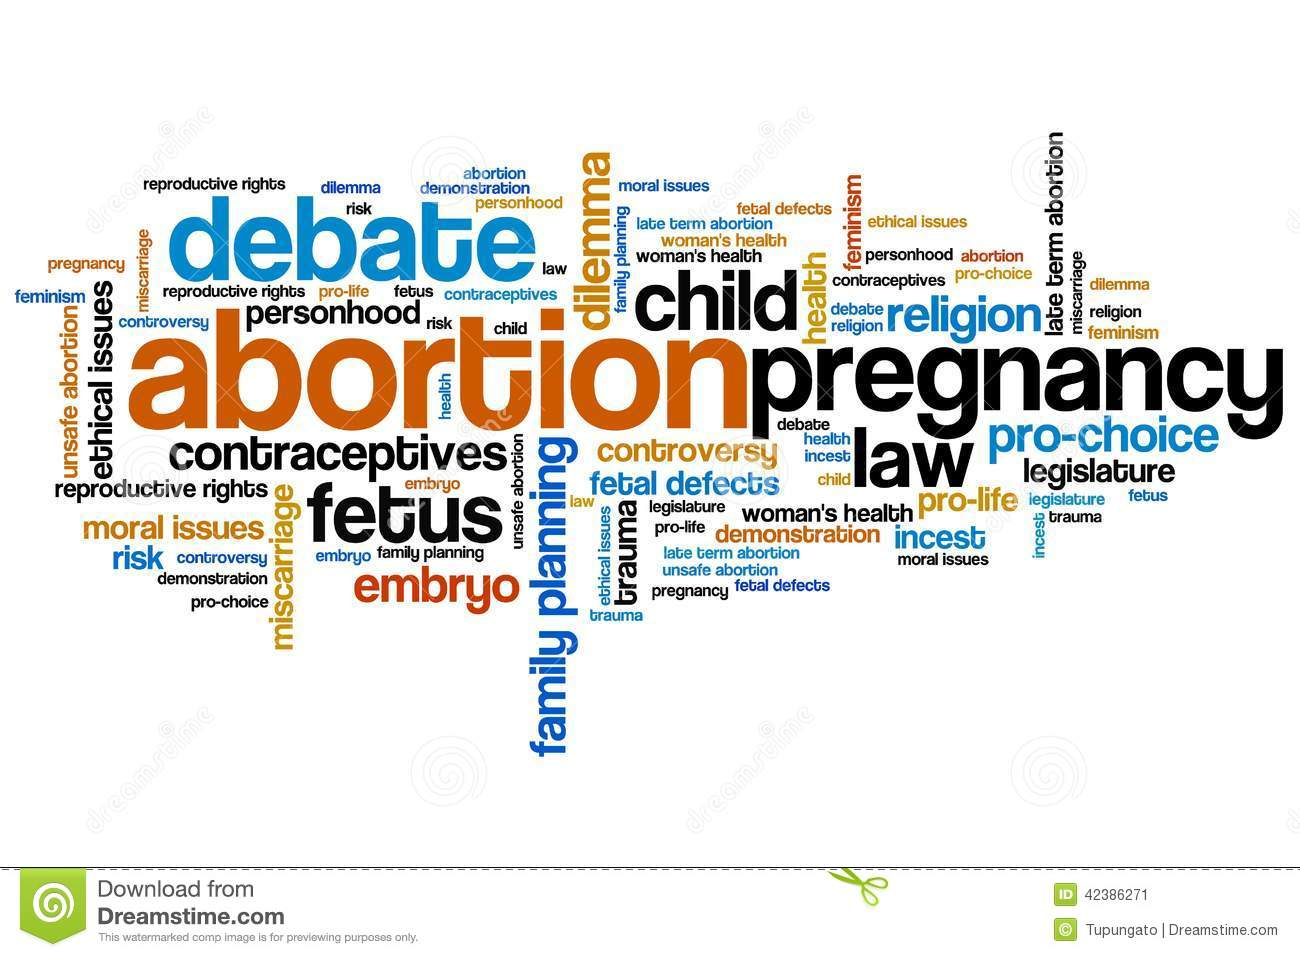 The ethical and practical aspects of abortion